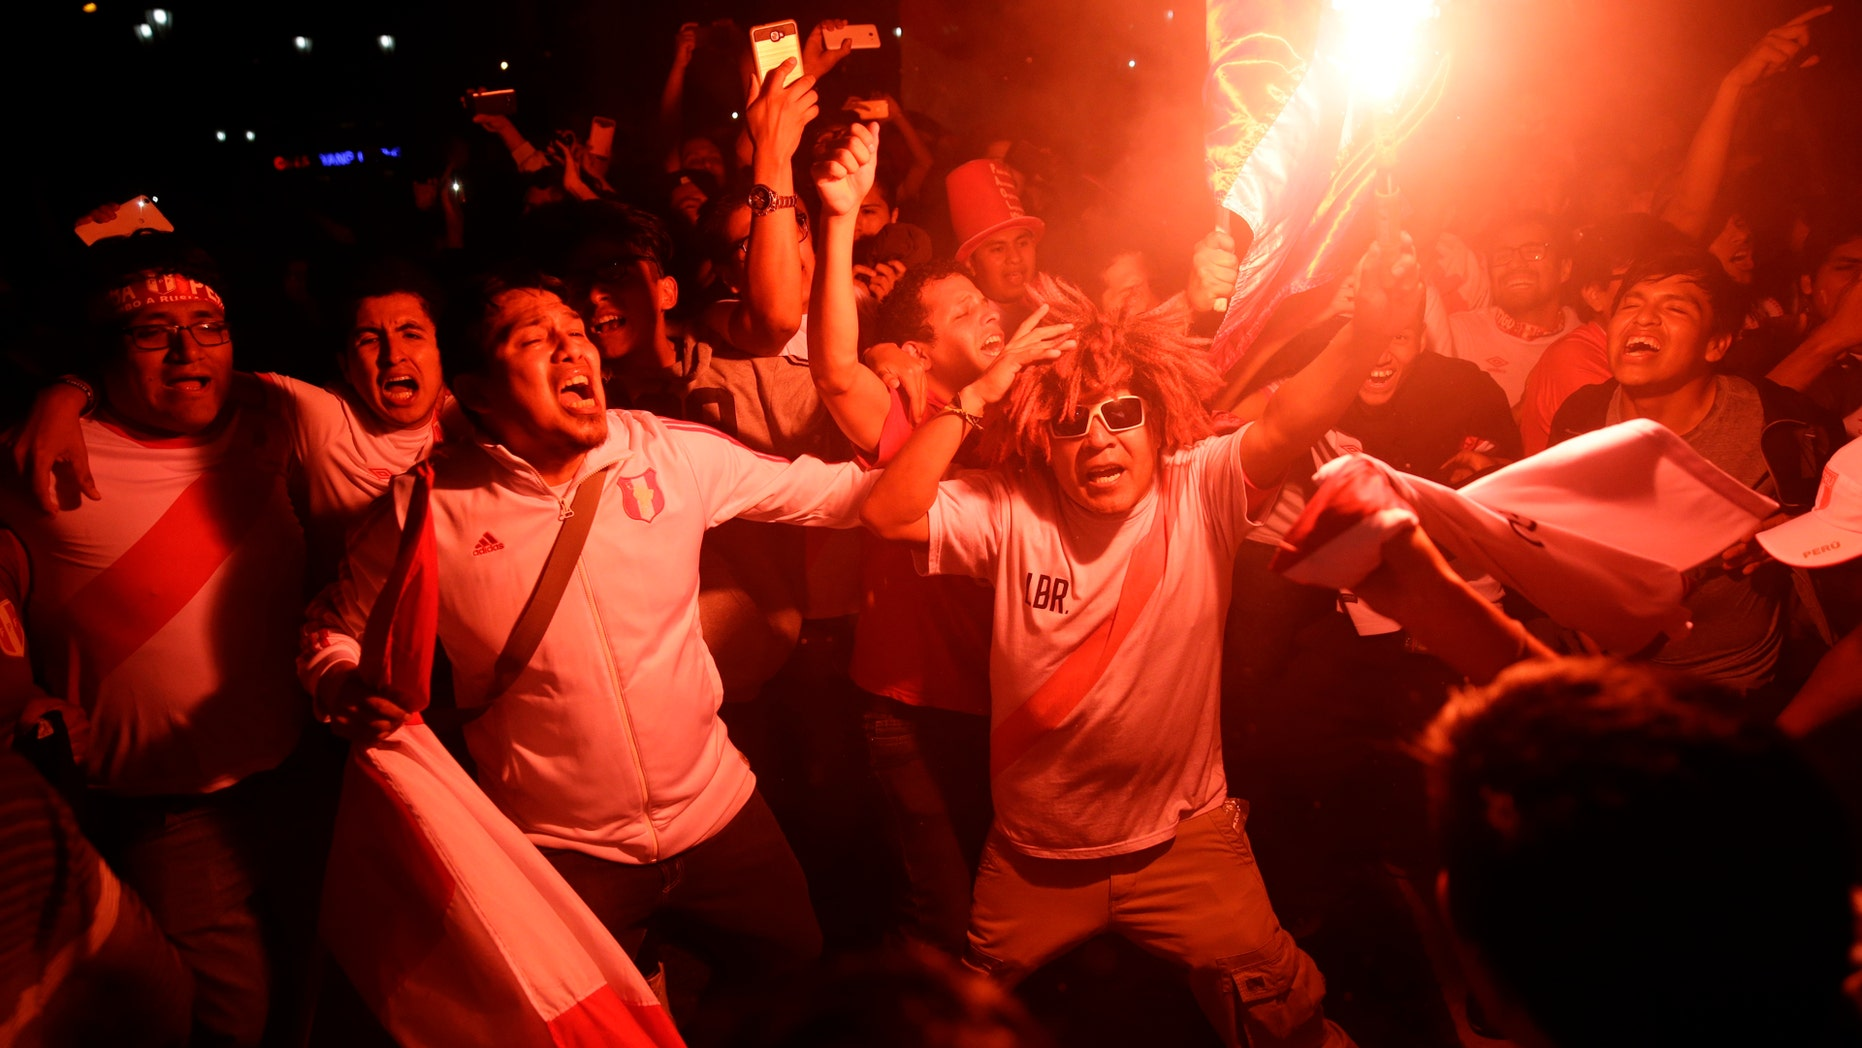 Fans celebrate after Peru qualified for the first time in 36 year for the soccer World Cup, in downtown Lima, Peru, Wednesday, Nov. 15, 2017. Peru defeated New Zealand 2-0 to win a two-leg playoff and earn the 32nd and last spot in the World Cup field in Russia. (AP Photo/Rodrigo Abd)